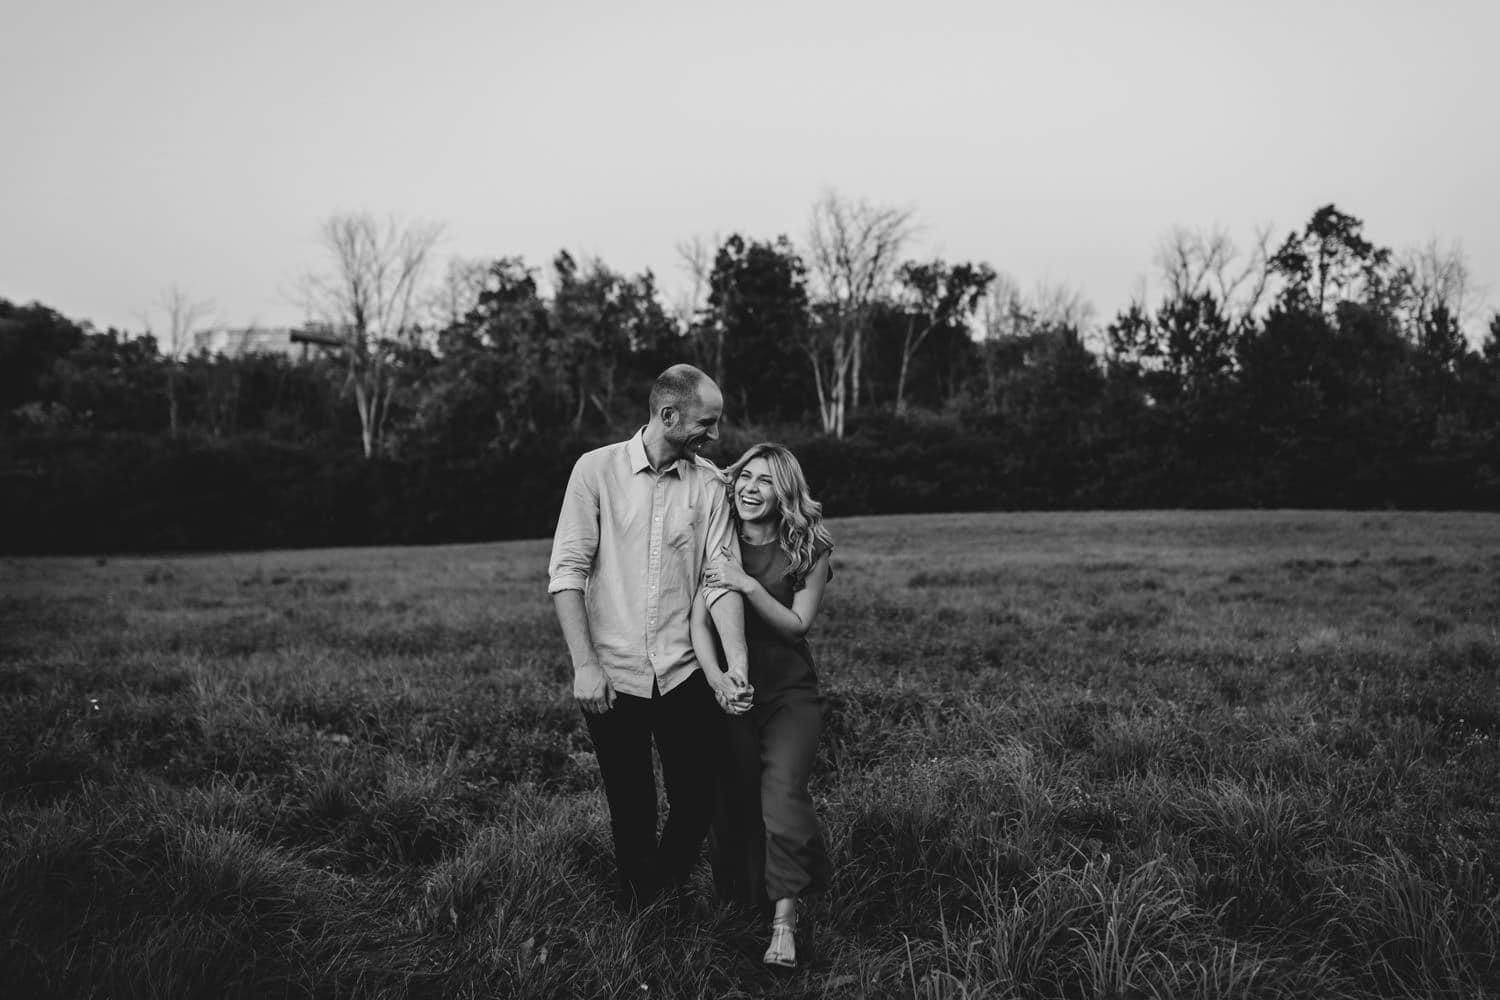 couple walk through open field together and laugh - carley teresa photography